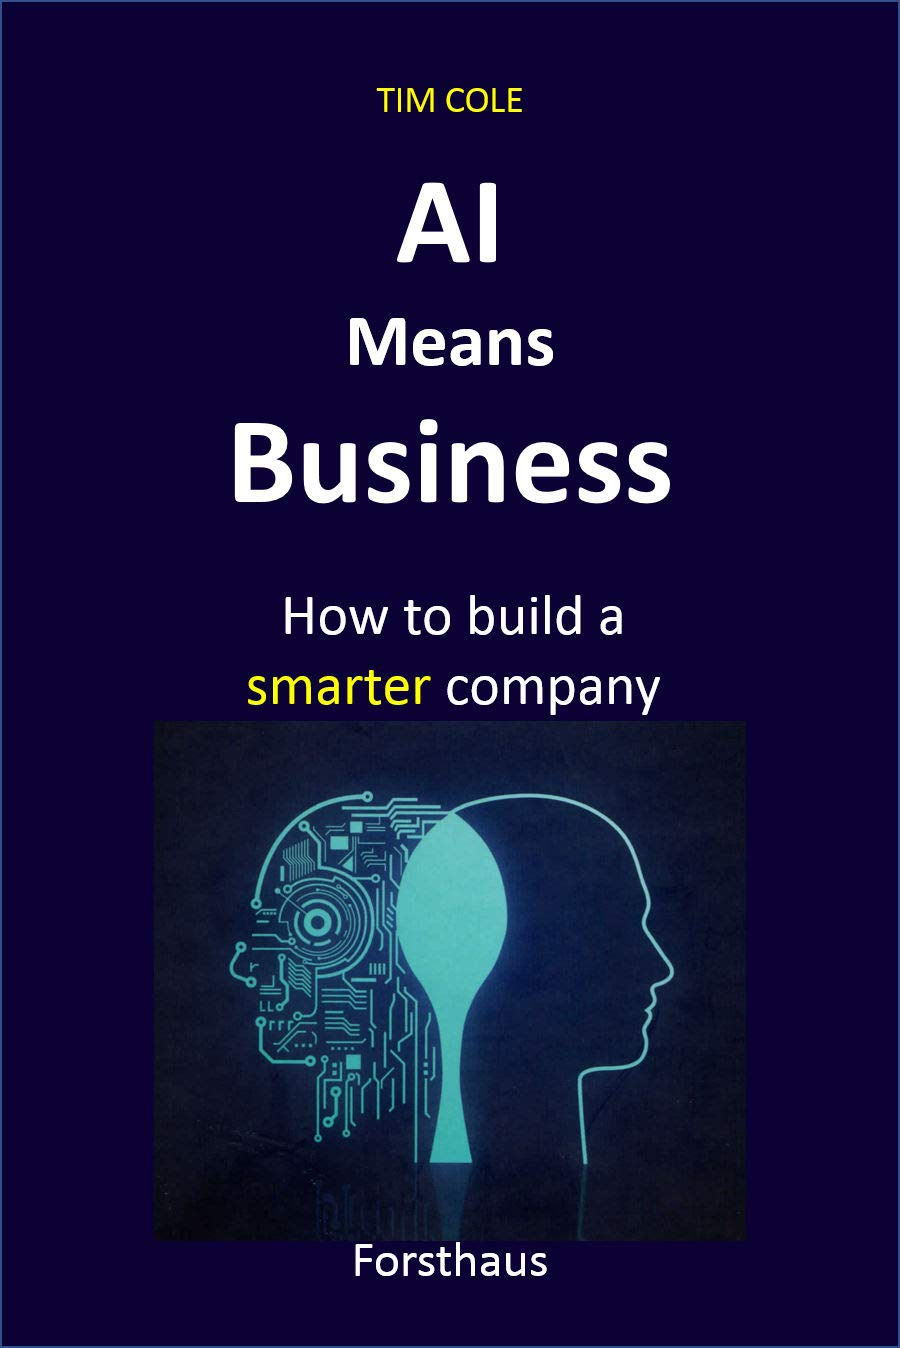 AI Means Business: How to build a smarter company